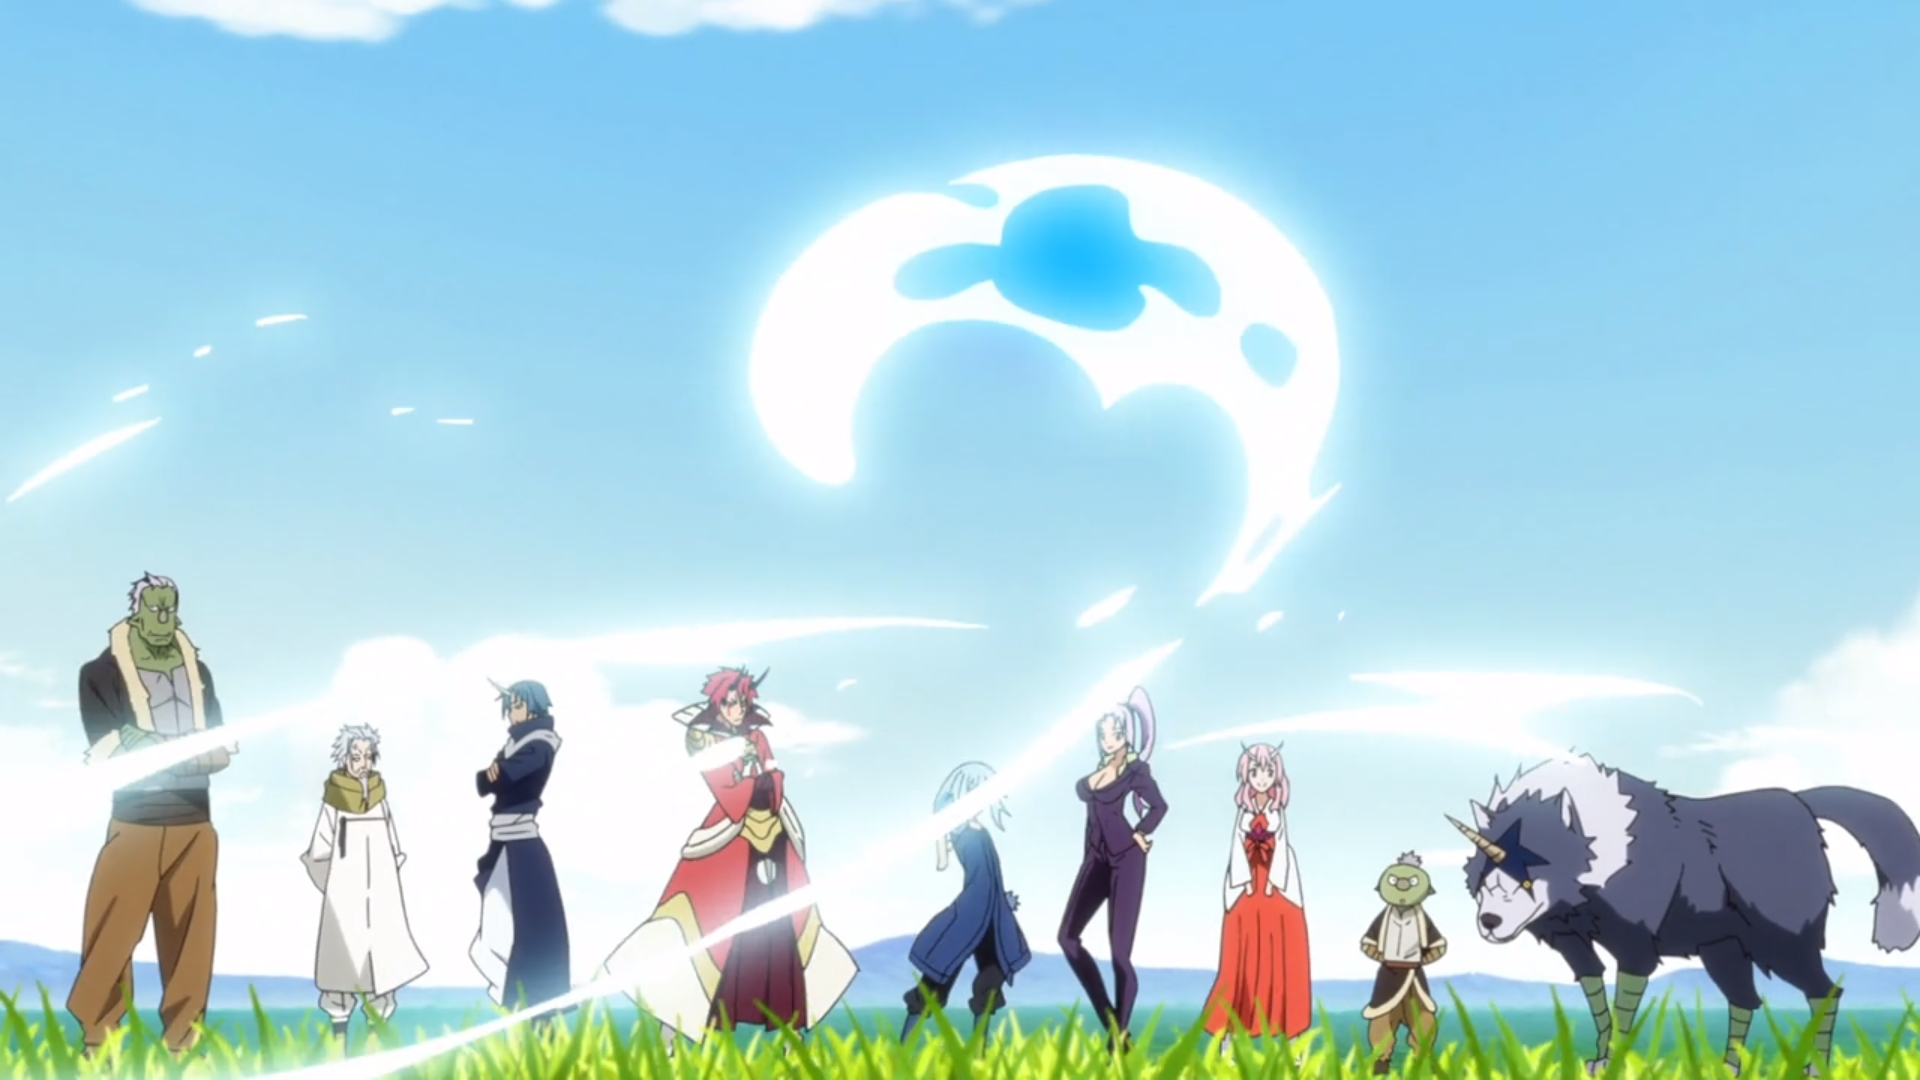 A group of people in fantasy clothing stand on a grassy field. In front of them is a glowing blue form shaped somewhat like a question mark.